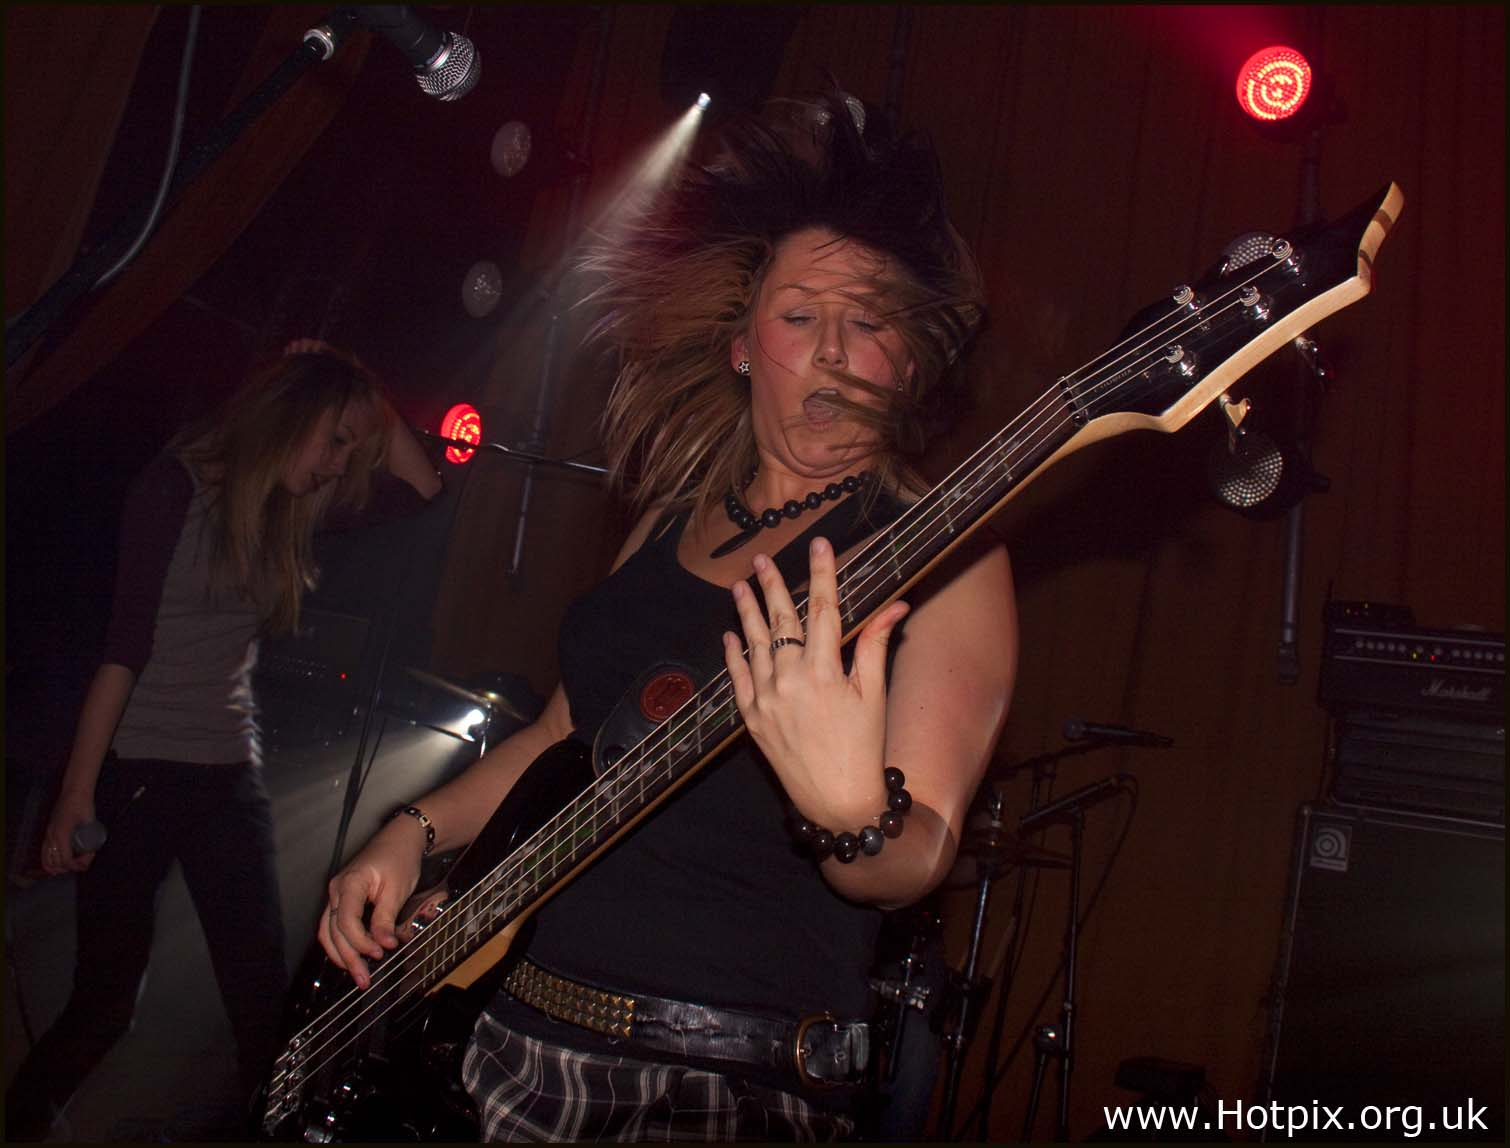 le,carla,lecarla,girl,female,music,musician,rock,indie,live,concert,stage,bass,guitar,lead,vocal,vocalist,rocker,rocking,banned,network,northwich,vale,royal,cheshire,west,chester,DAN,development,arts,youth,england,winnington,rec,UK,britain,british,sexy,lady,women,venue,gig,20100226,26022010,tonysmith,tony,smith,hot pix,muchacha,femenina,de,la,mujer,se\u00f1ora,woman,\u5973\u6027\u30e1\u30b9\u306e\u5973\u6027\u306e\u5973\u306e\u5b50,\u592b\u4eba\u5973\u6027\u5987\u5973\u5973\u5b69,fille,f\u00e9minine,femme,dame,gigs,band,bands,musicians,performing,playing,MIS,@hotpixUK,ActiveH,housingtechnology